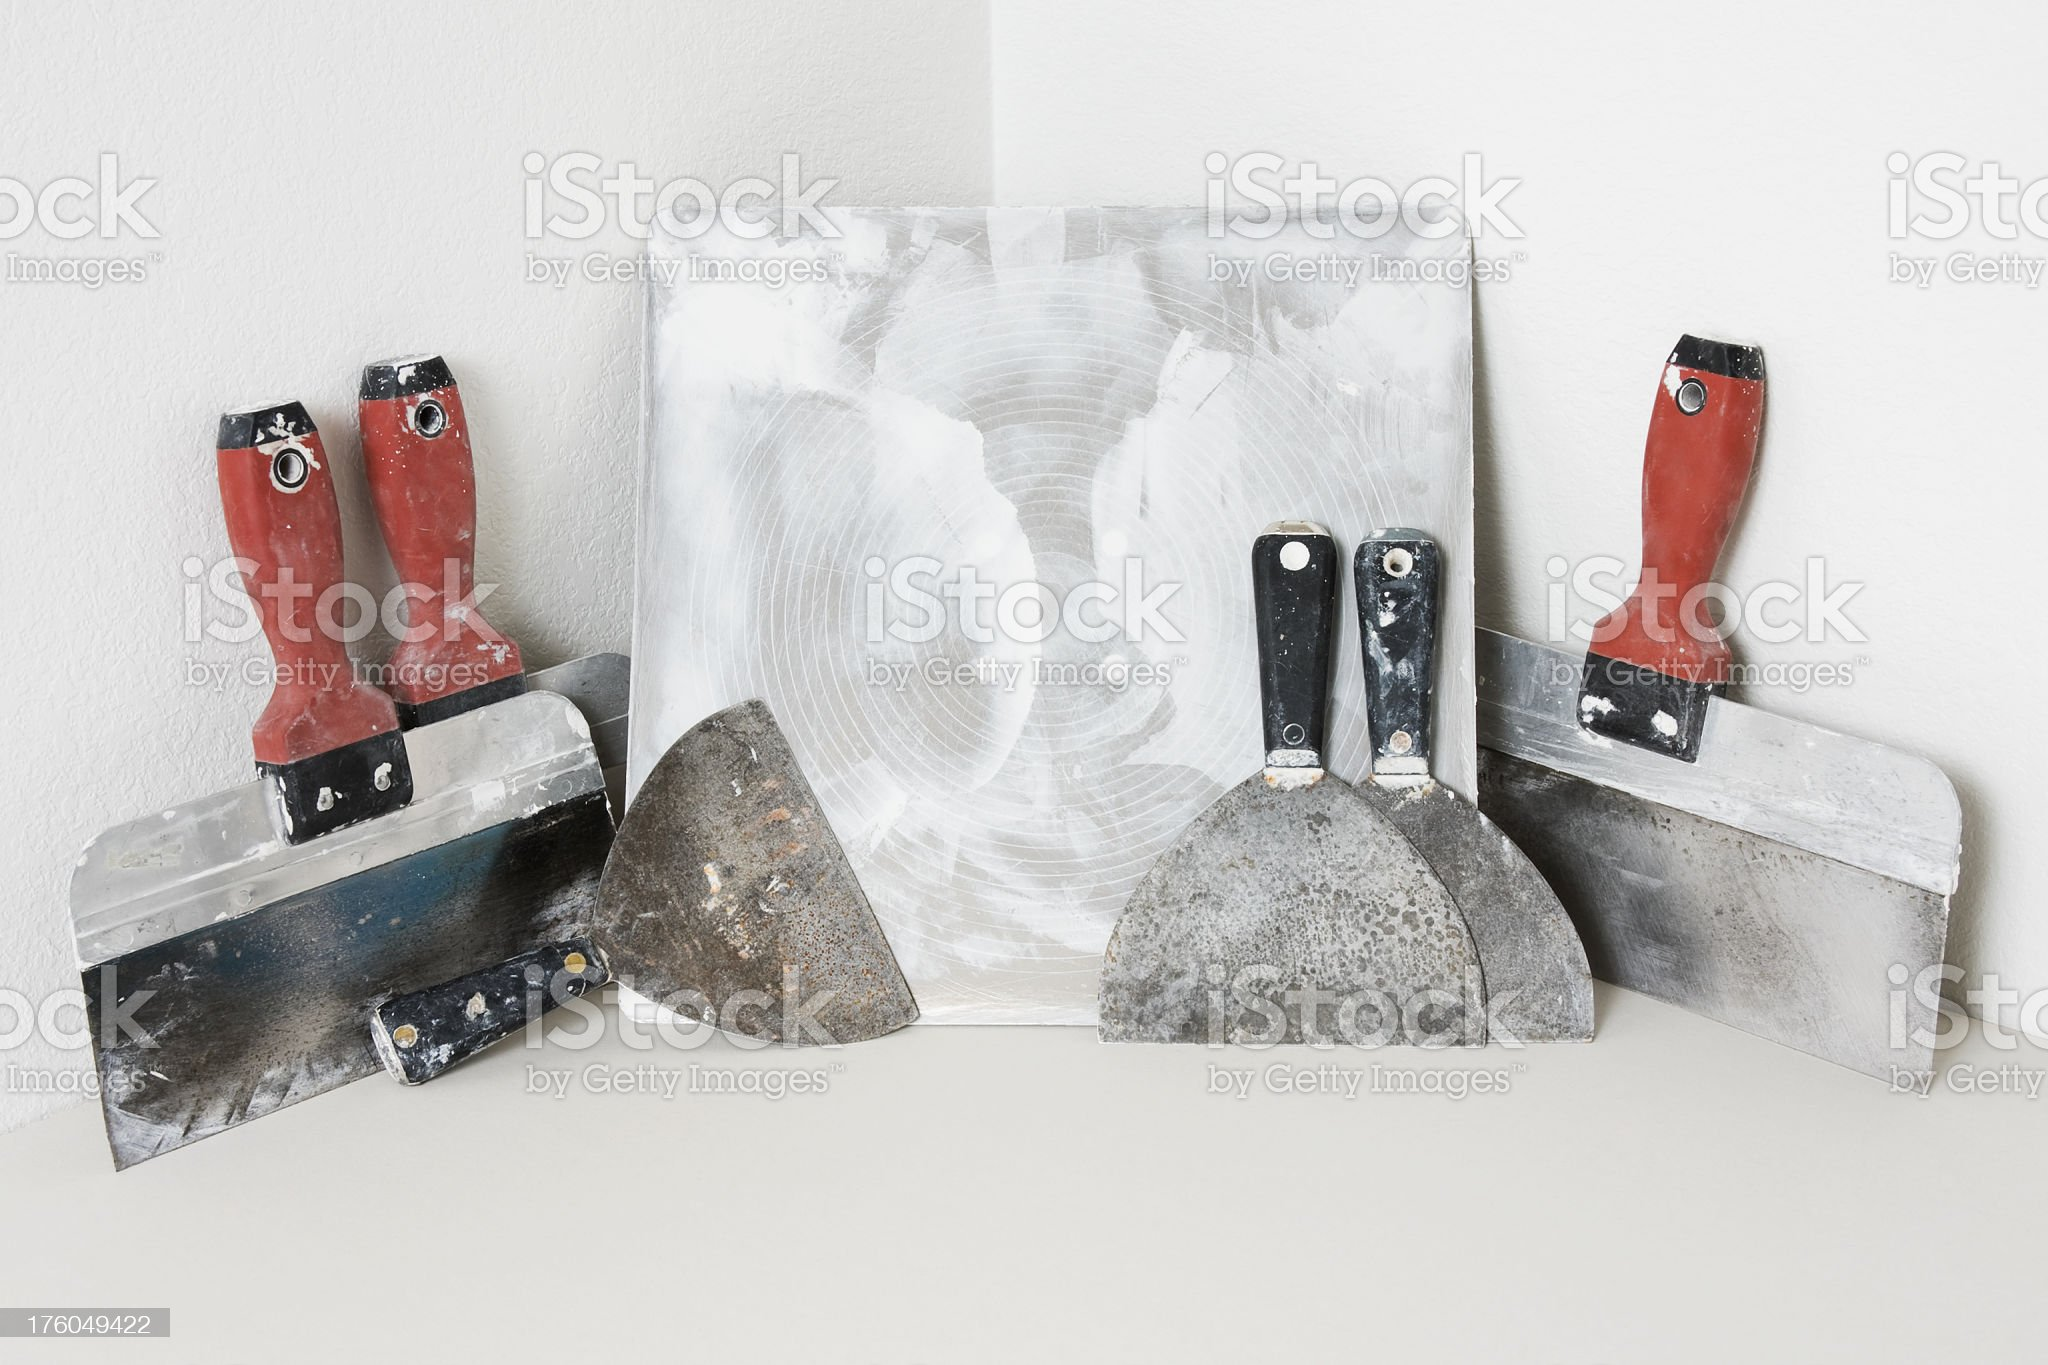 Drywall Tools in a Corner royalty-free stock photo